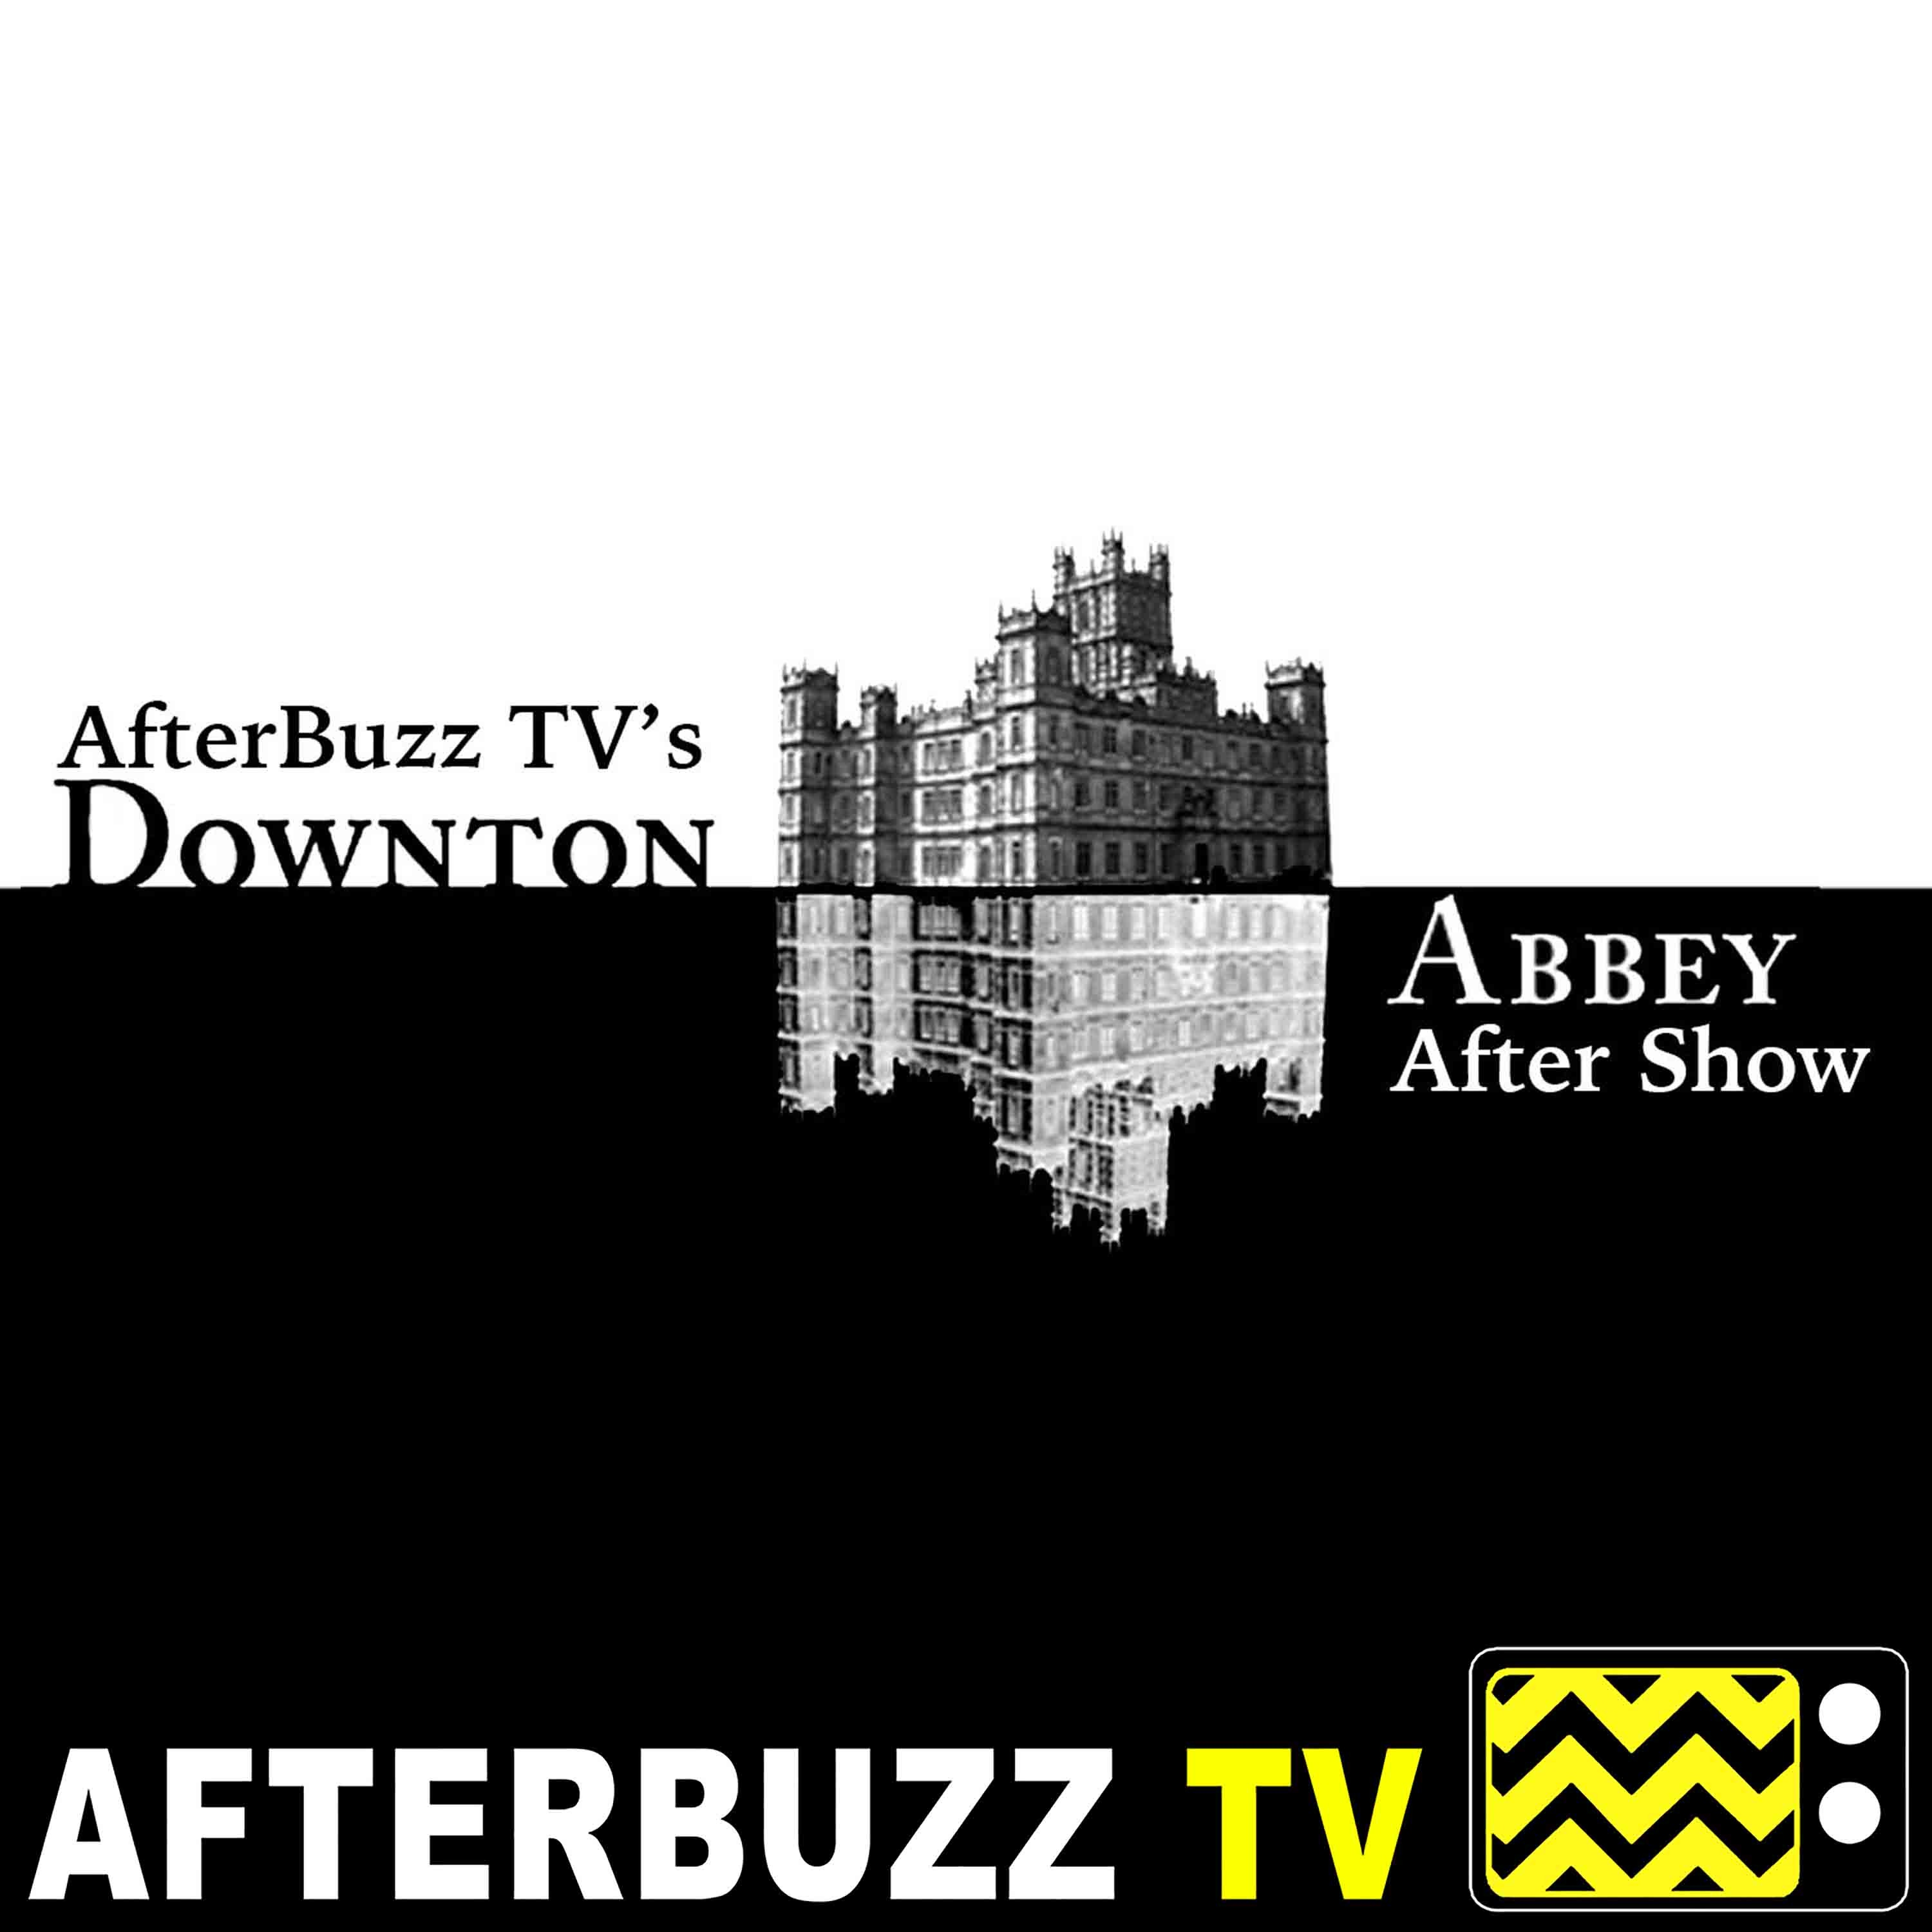 Downton Abbey UK S:6 | Episode 4 | AfterBuzz TV AfterShow